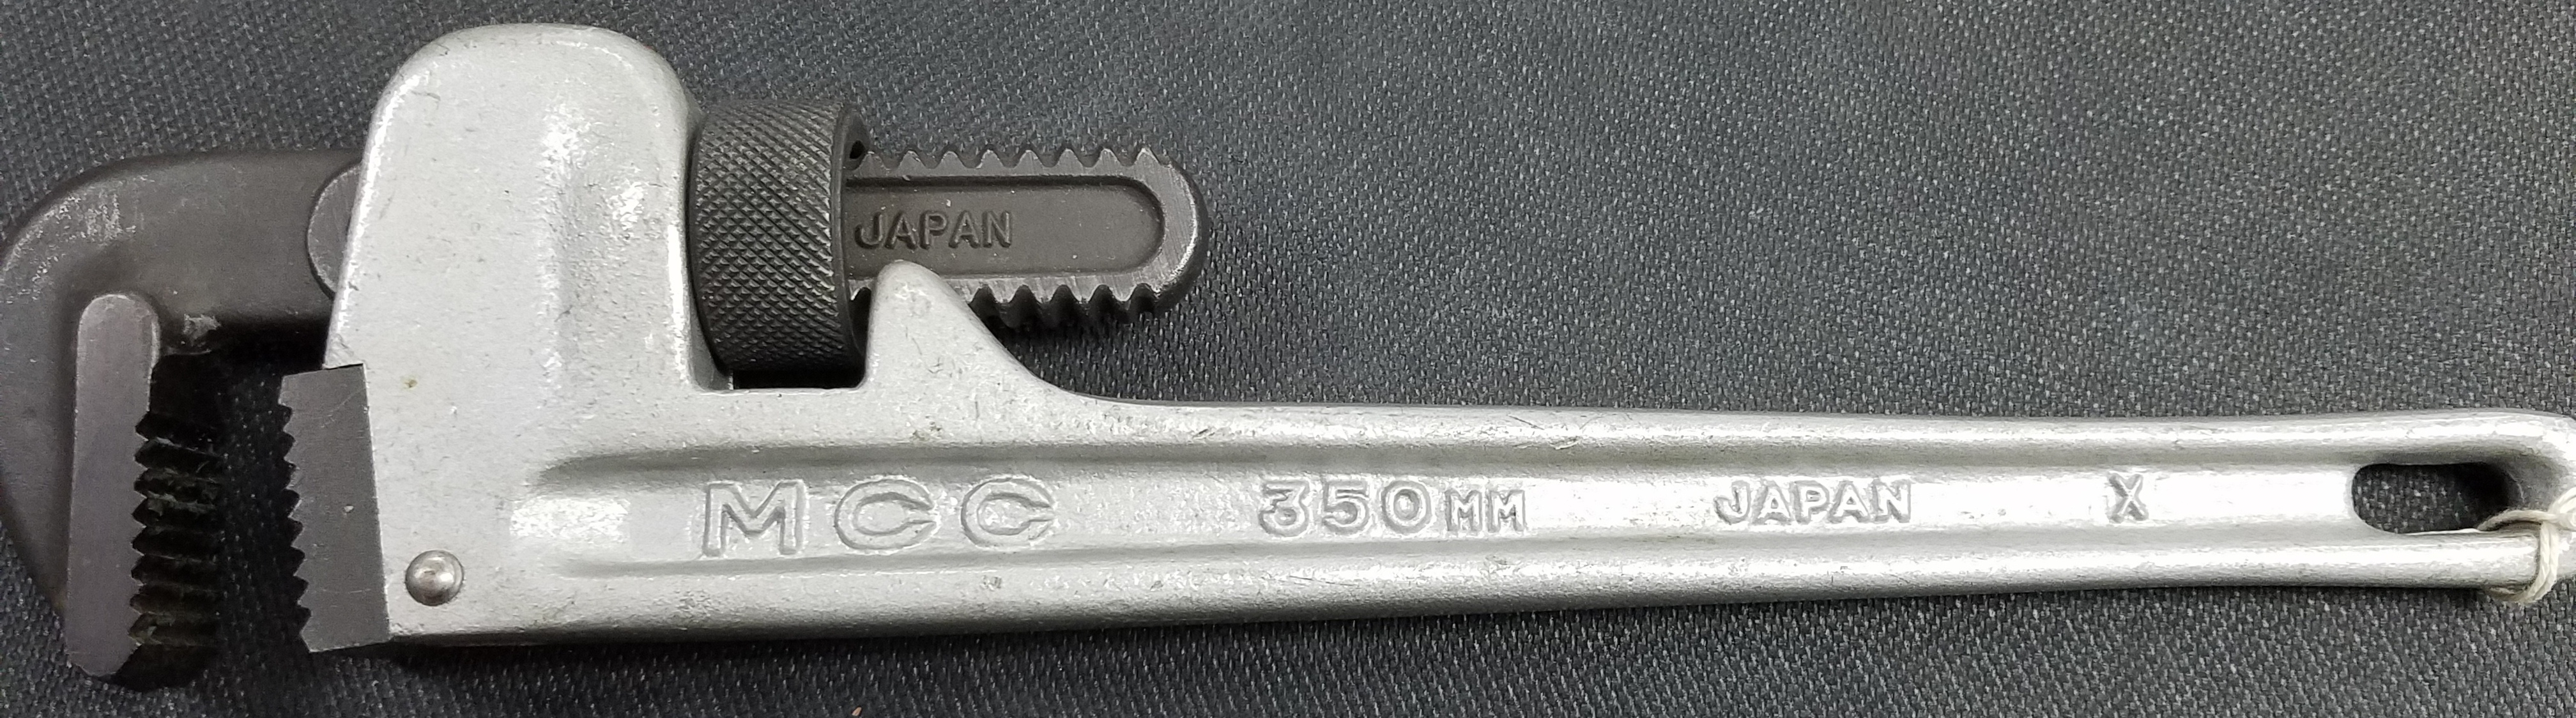 PIPE WRENCH 350MM